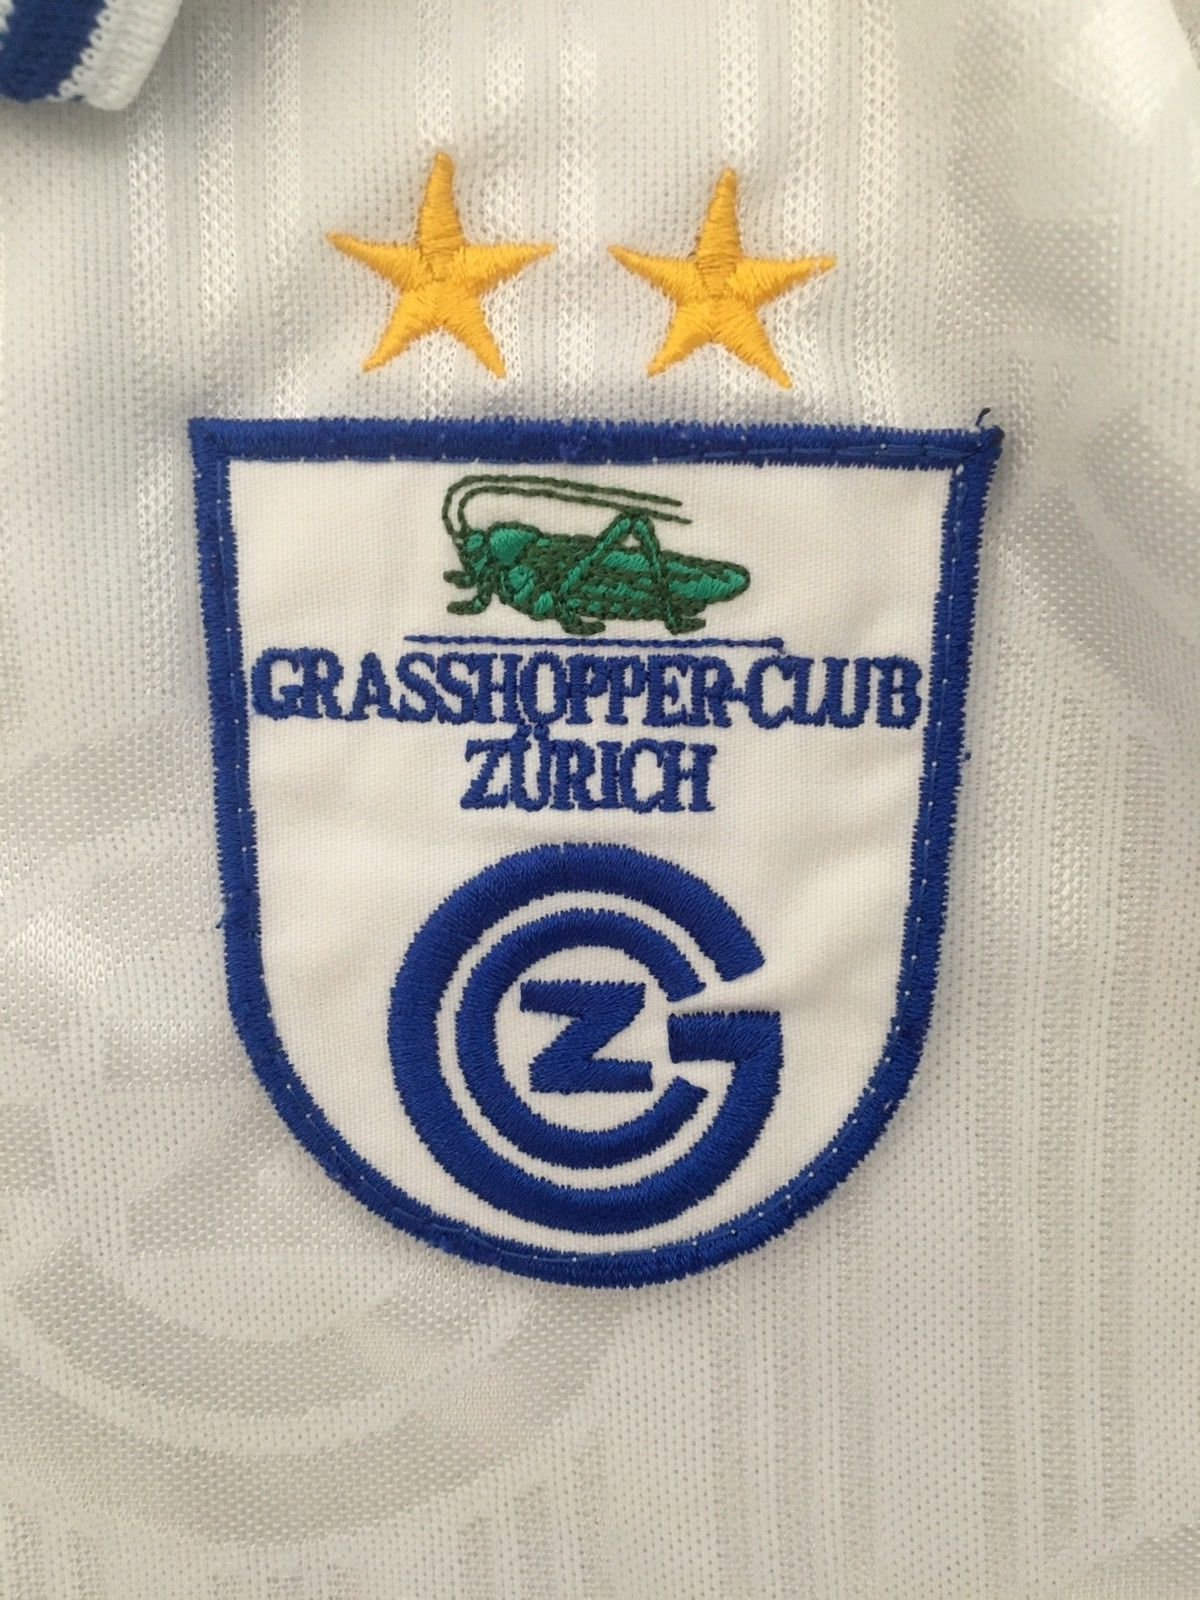 1997/98 Grasshoppers Home Shirt (M)